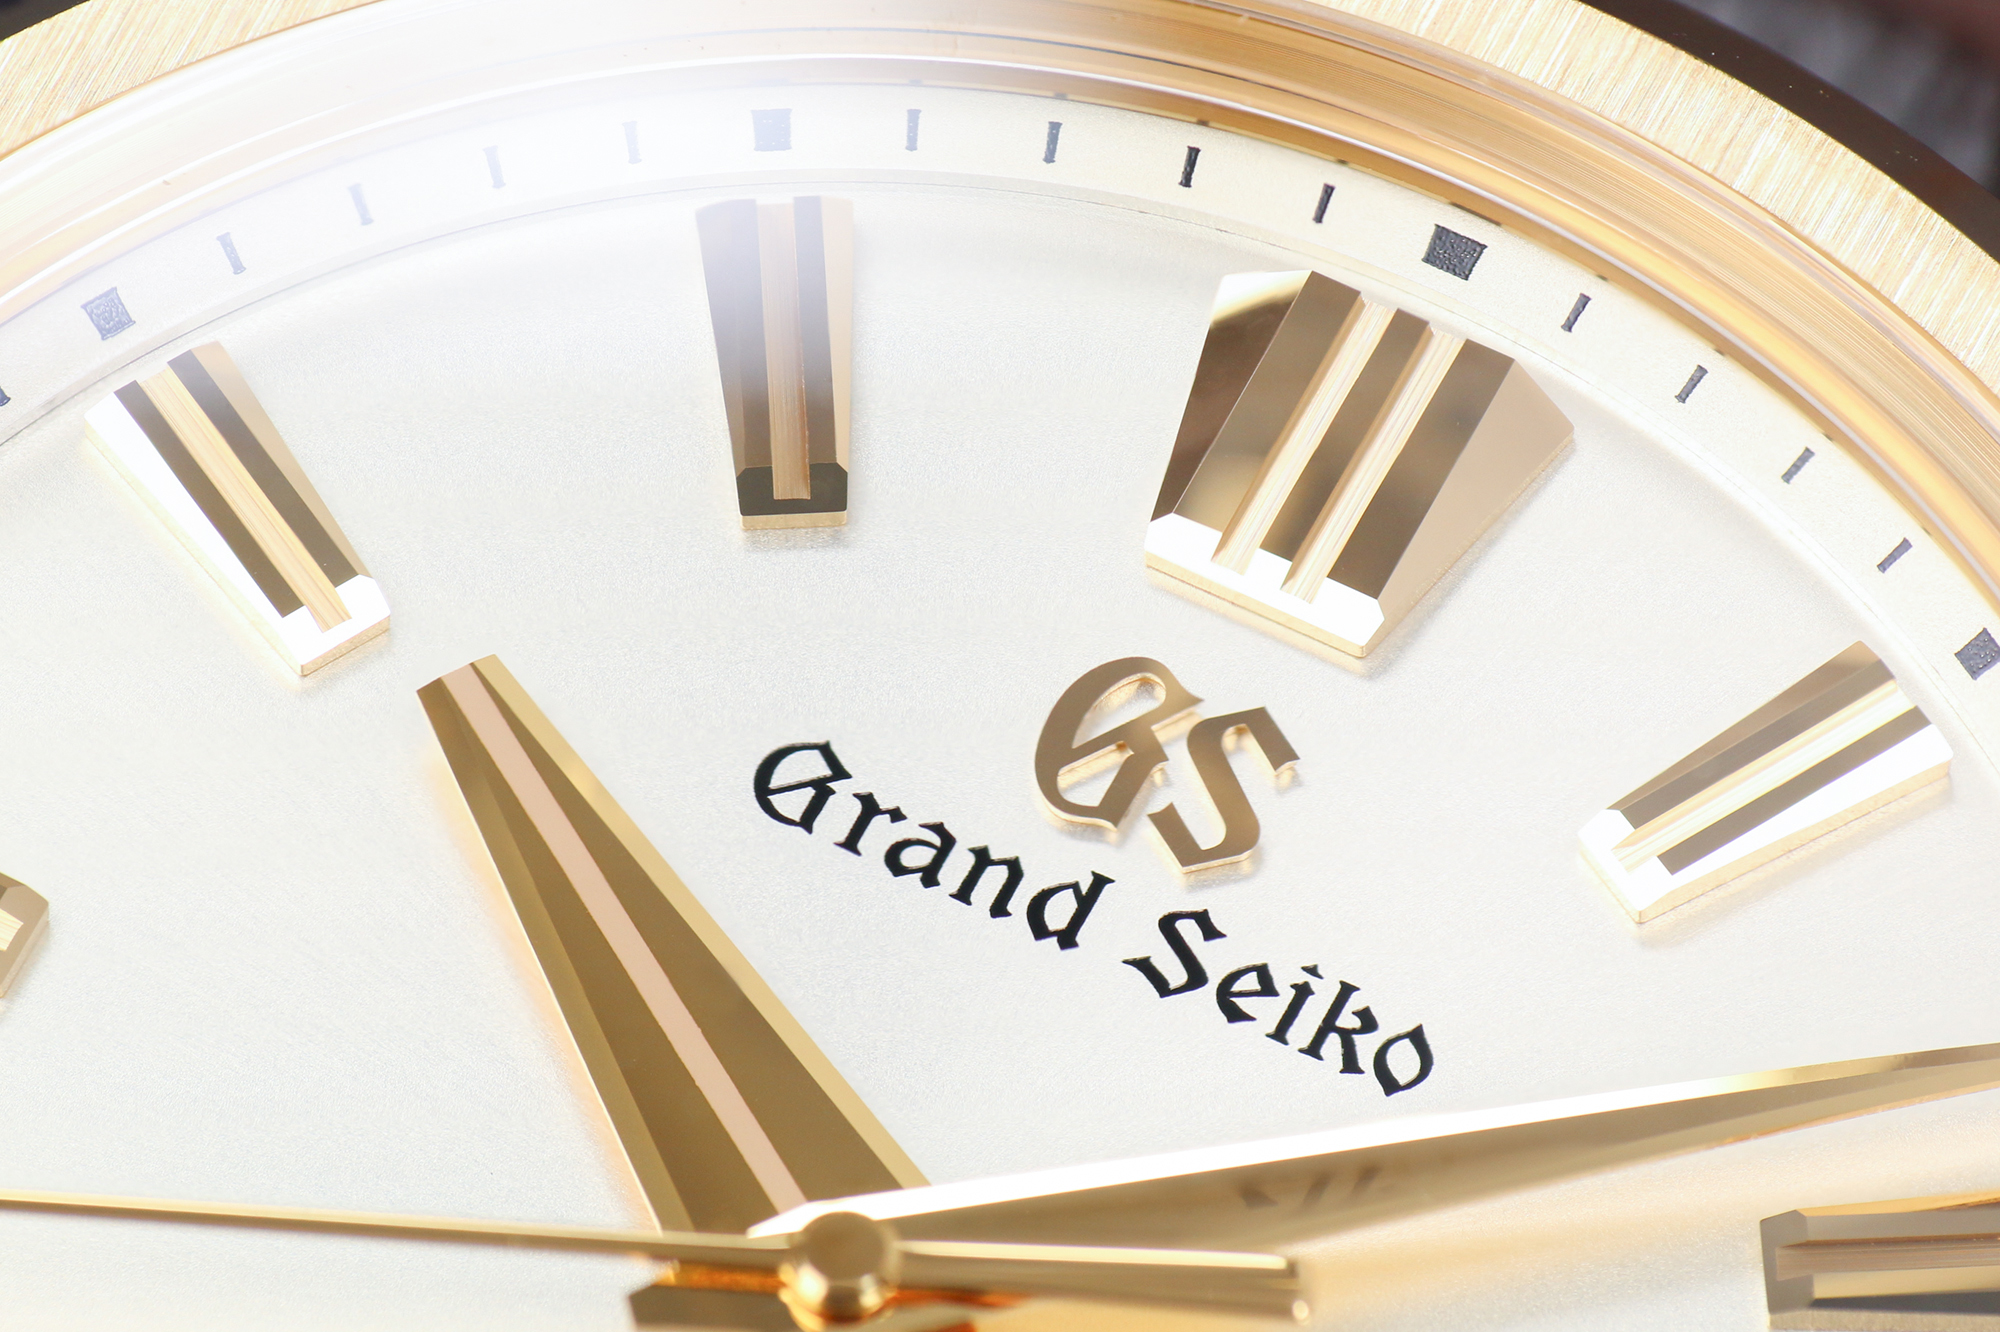 Grand Seiko SLGH002 with a gold case and light dial macro detail.